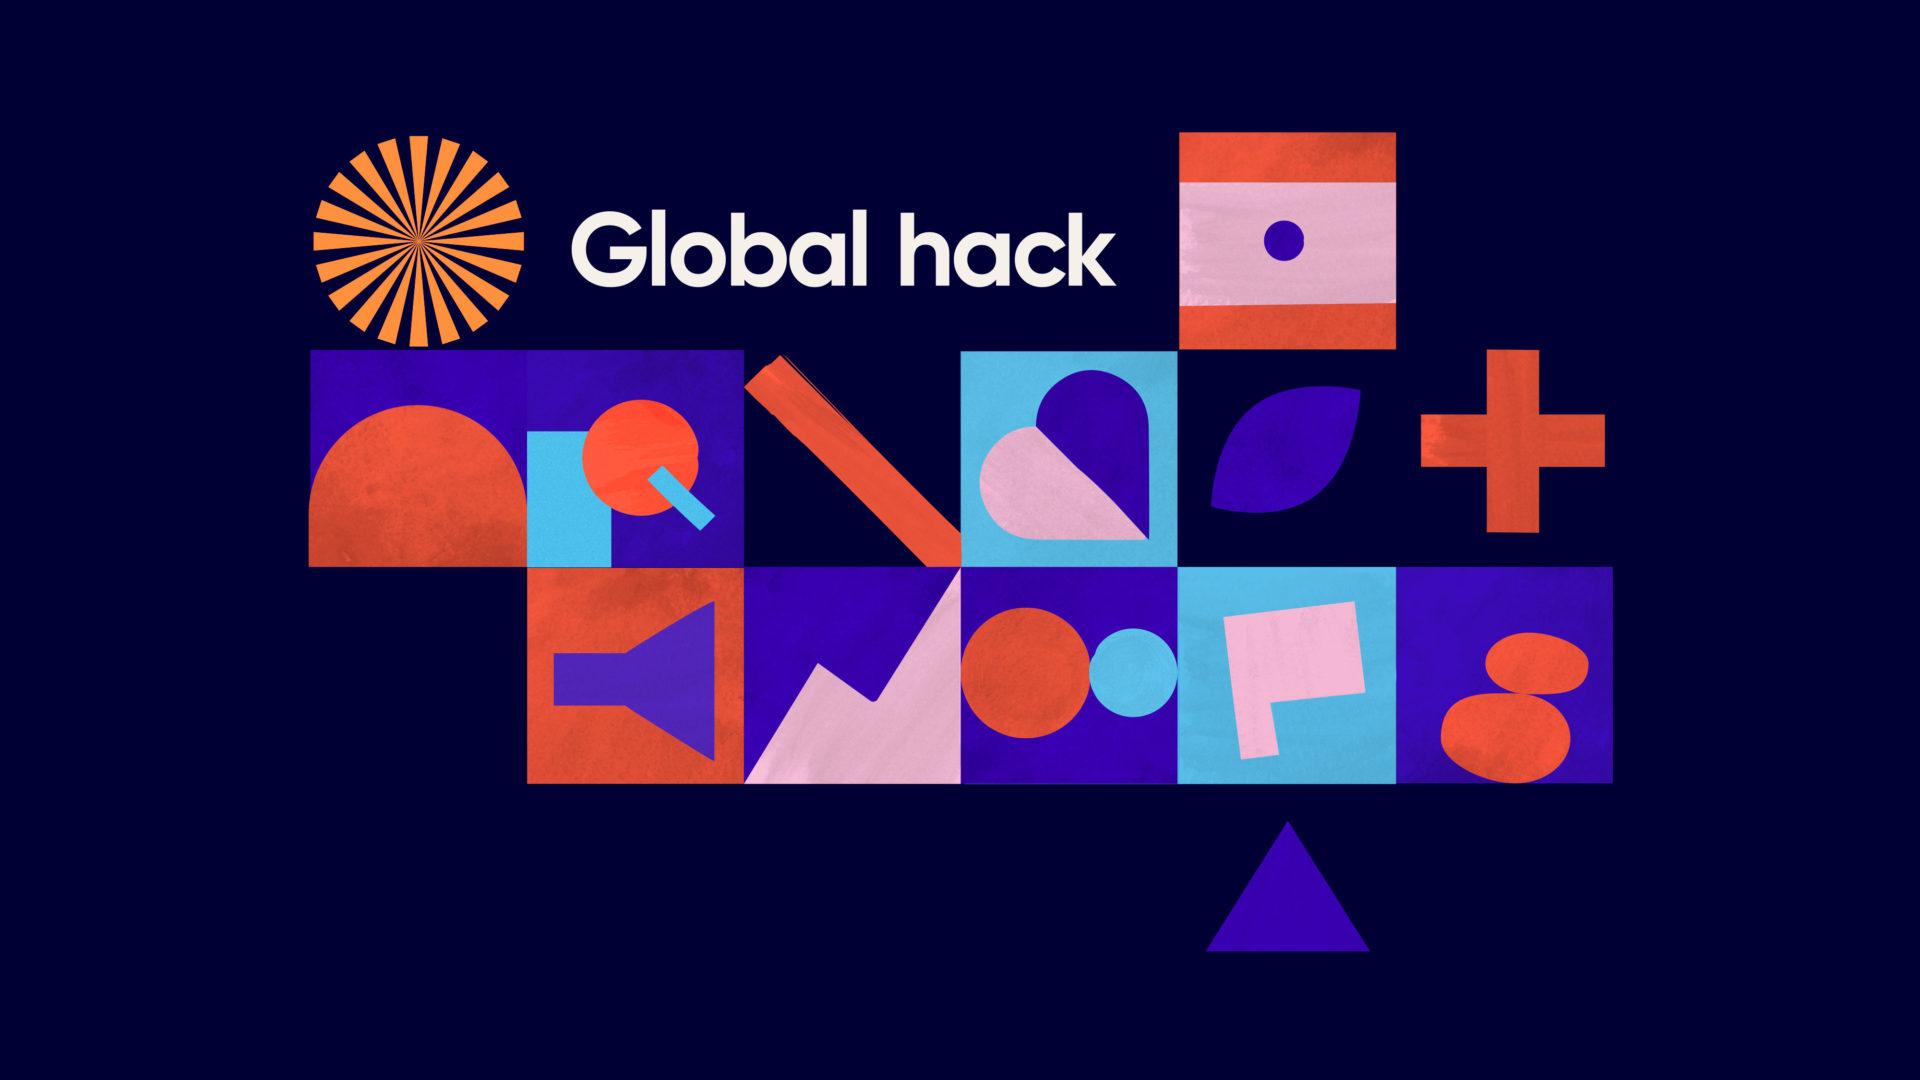 Register today for Global Hack and shape the post-COVID-19 future